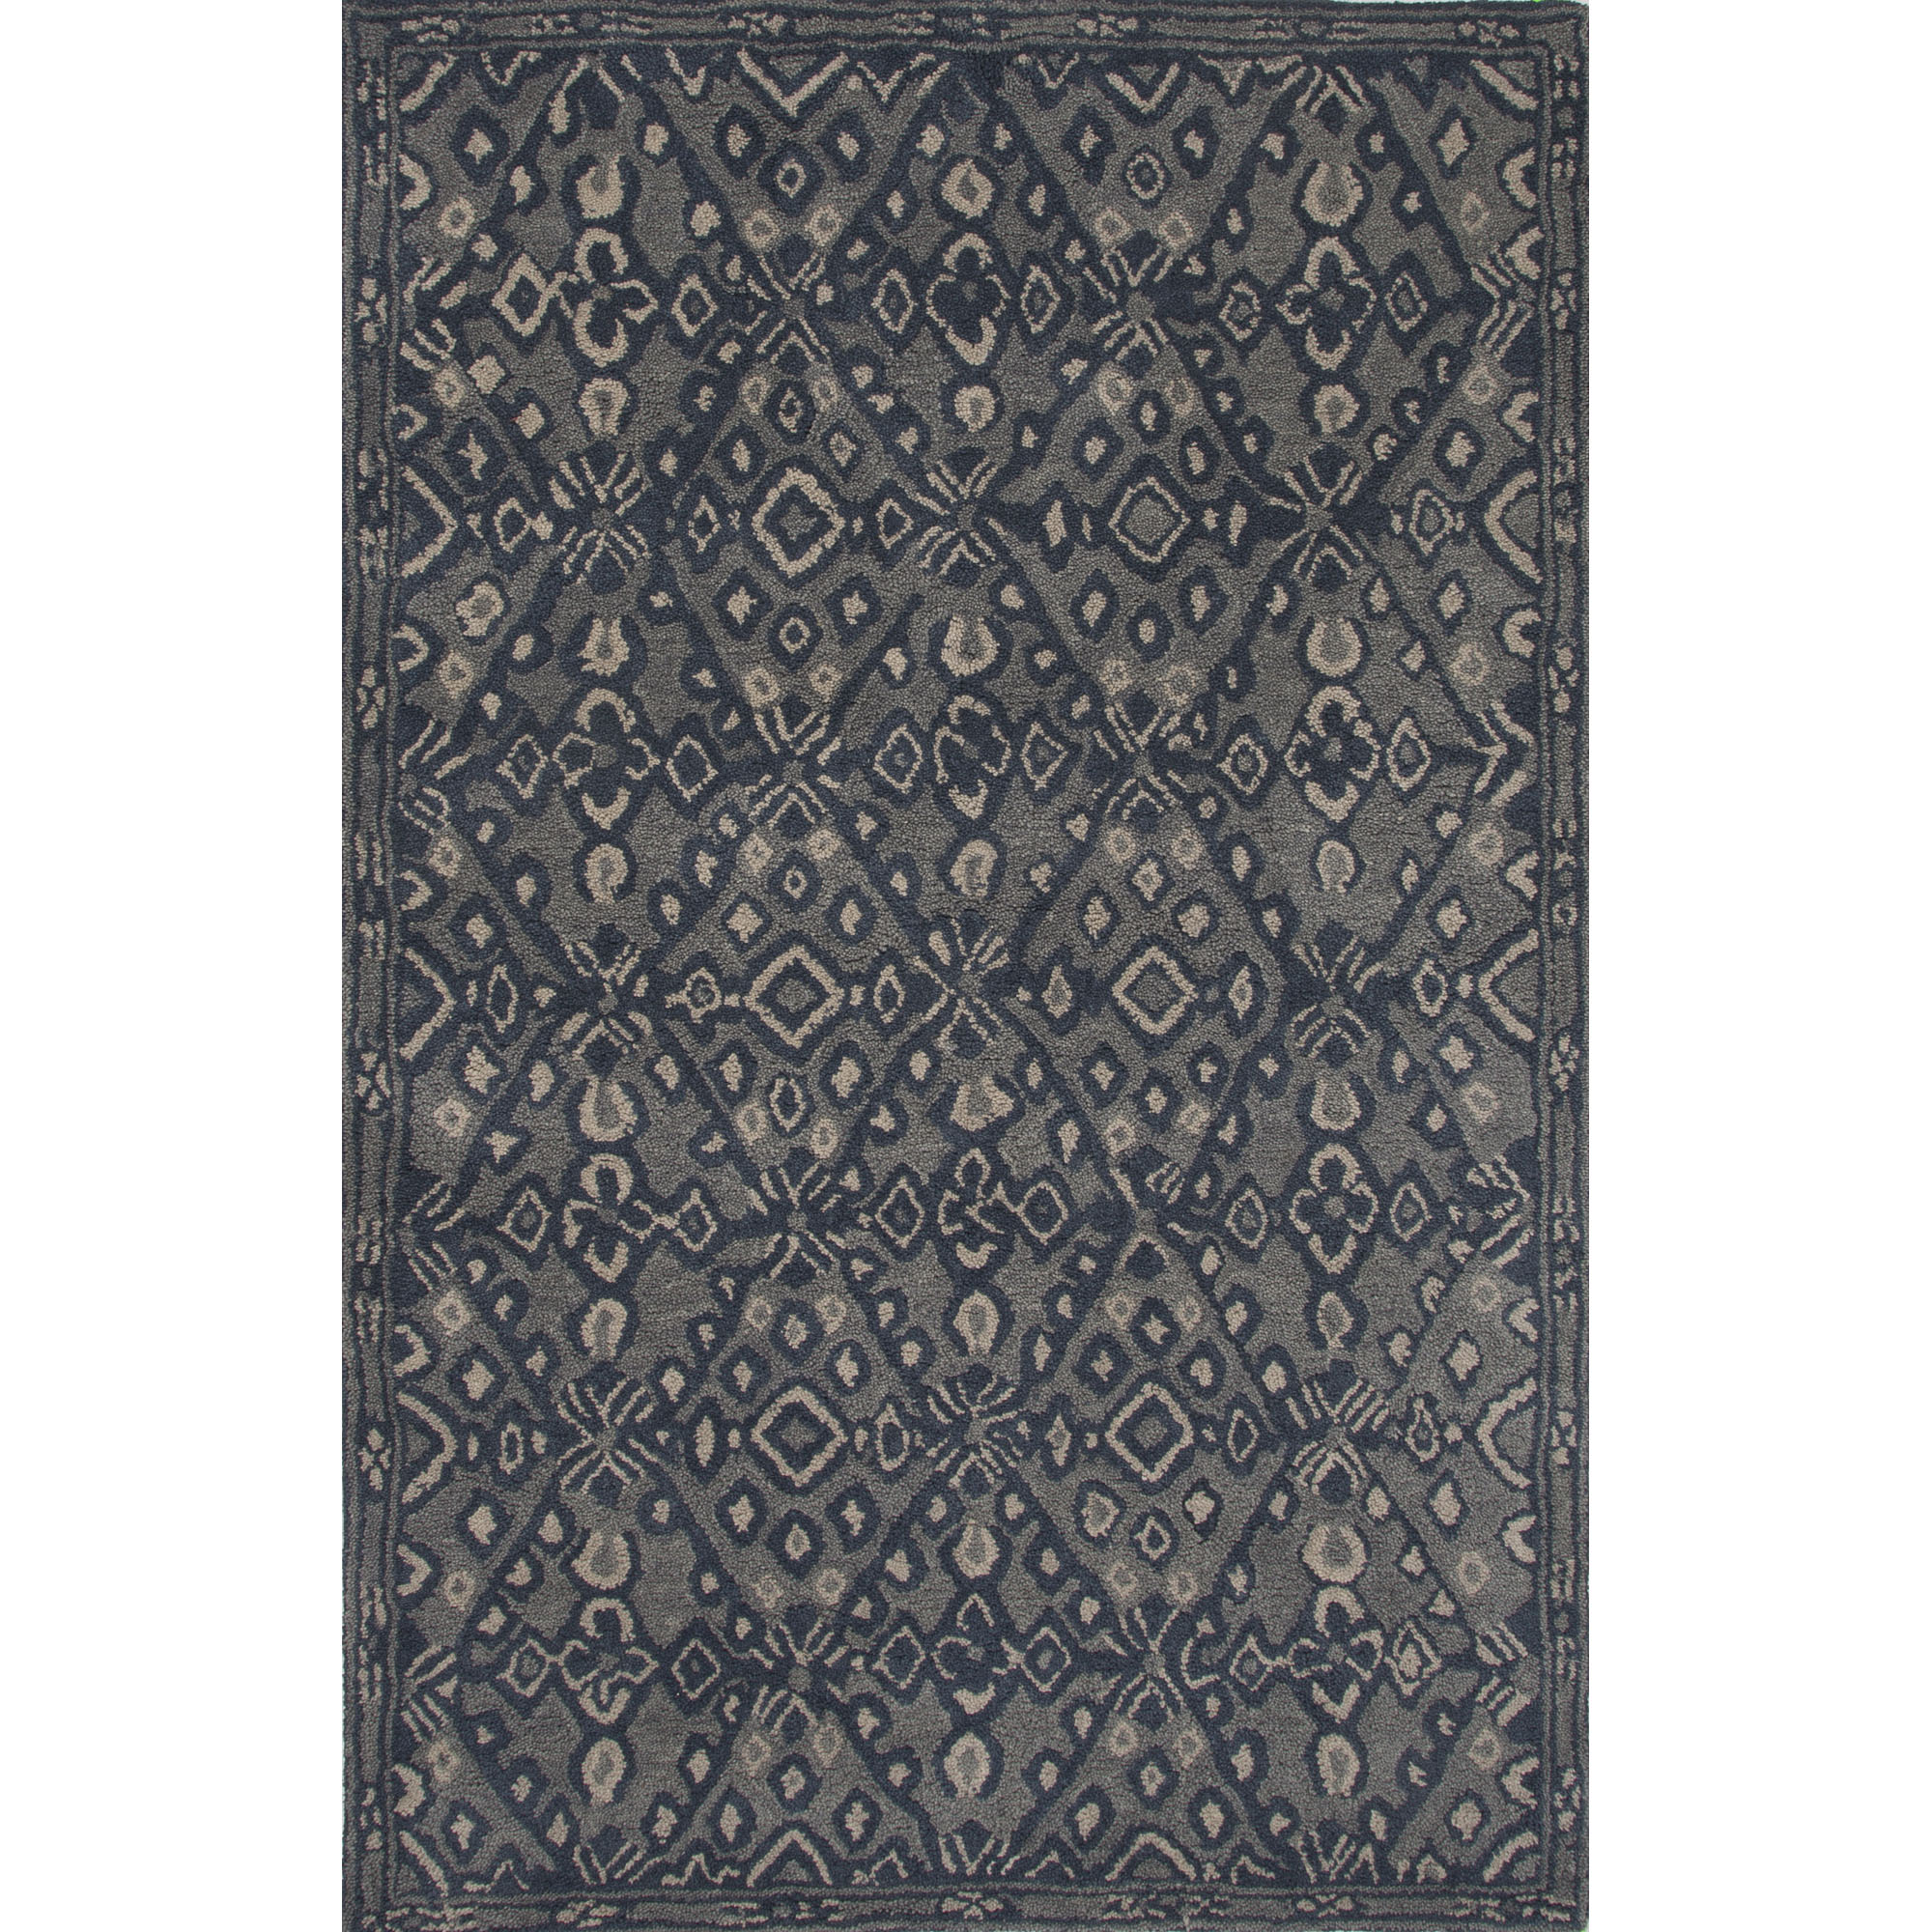 JAIPUR Rugs Traditions Made Modern Tufted 8 x 11 Rug - Item Number: RUG122197